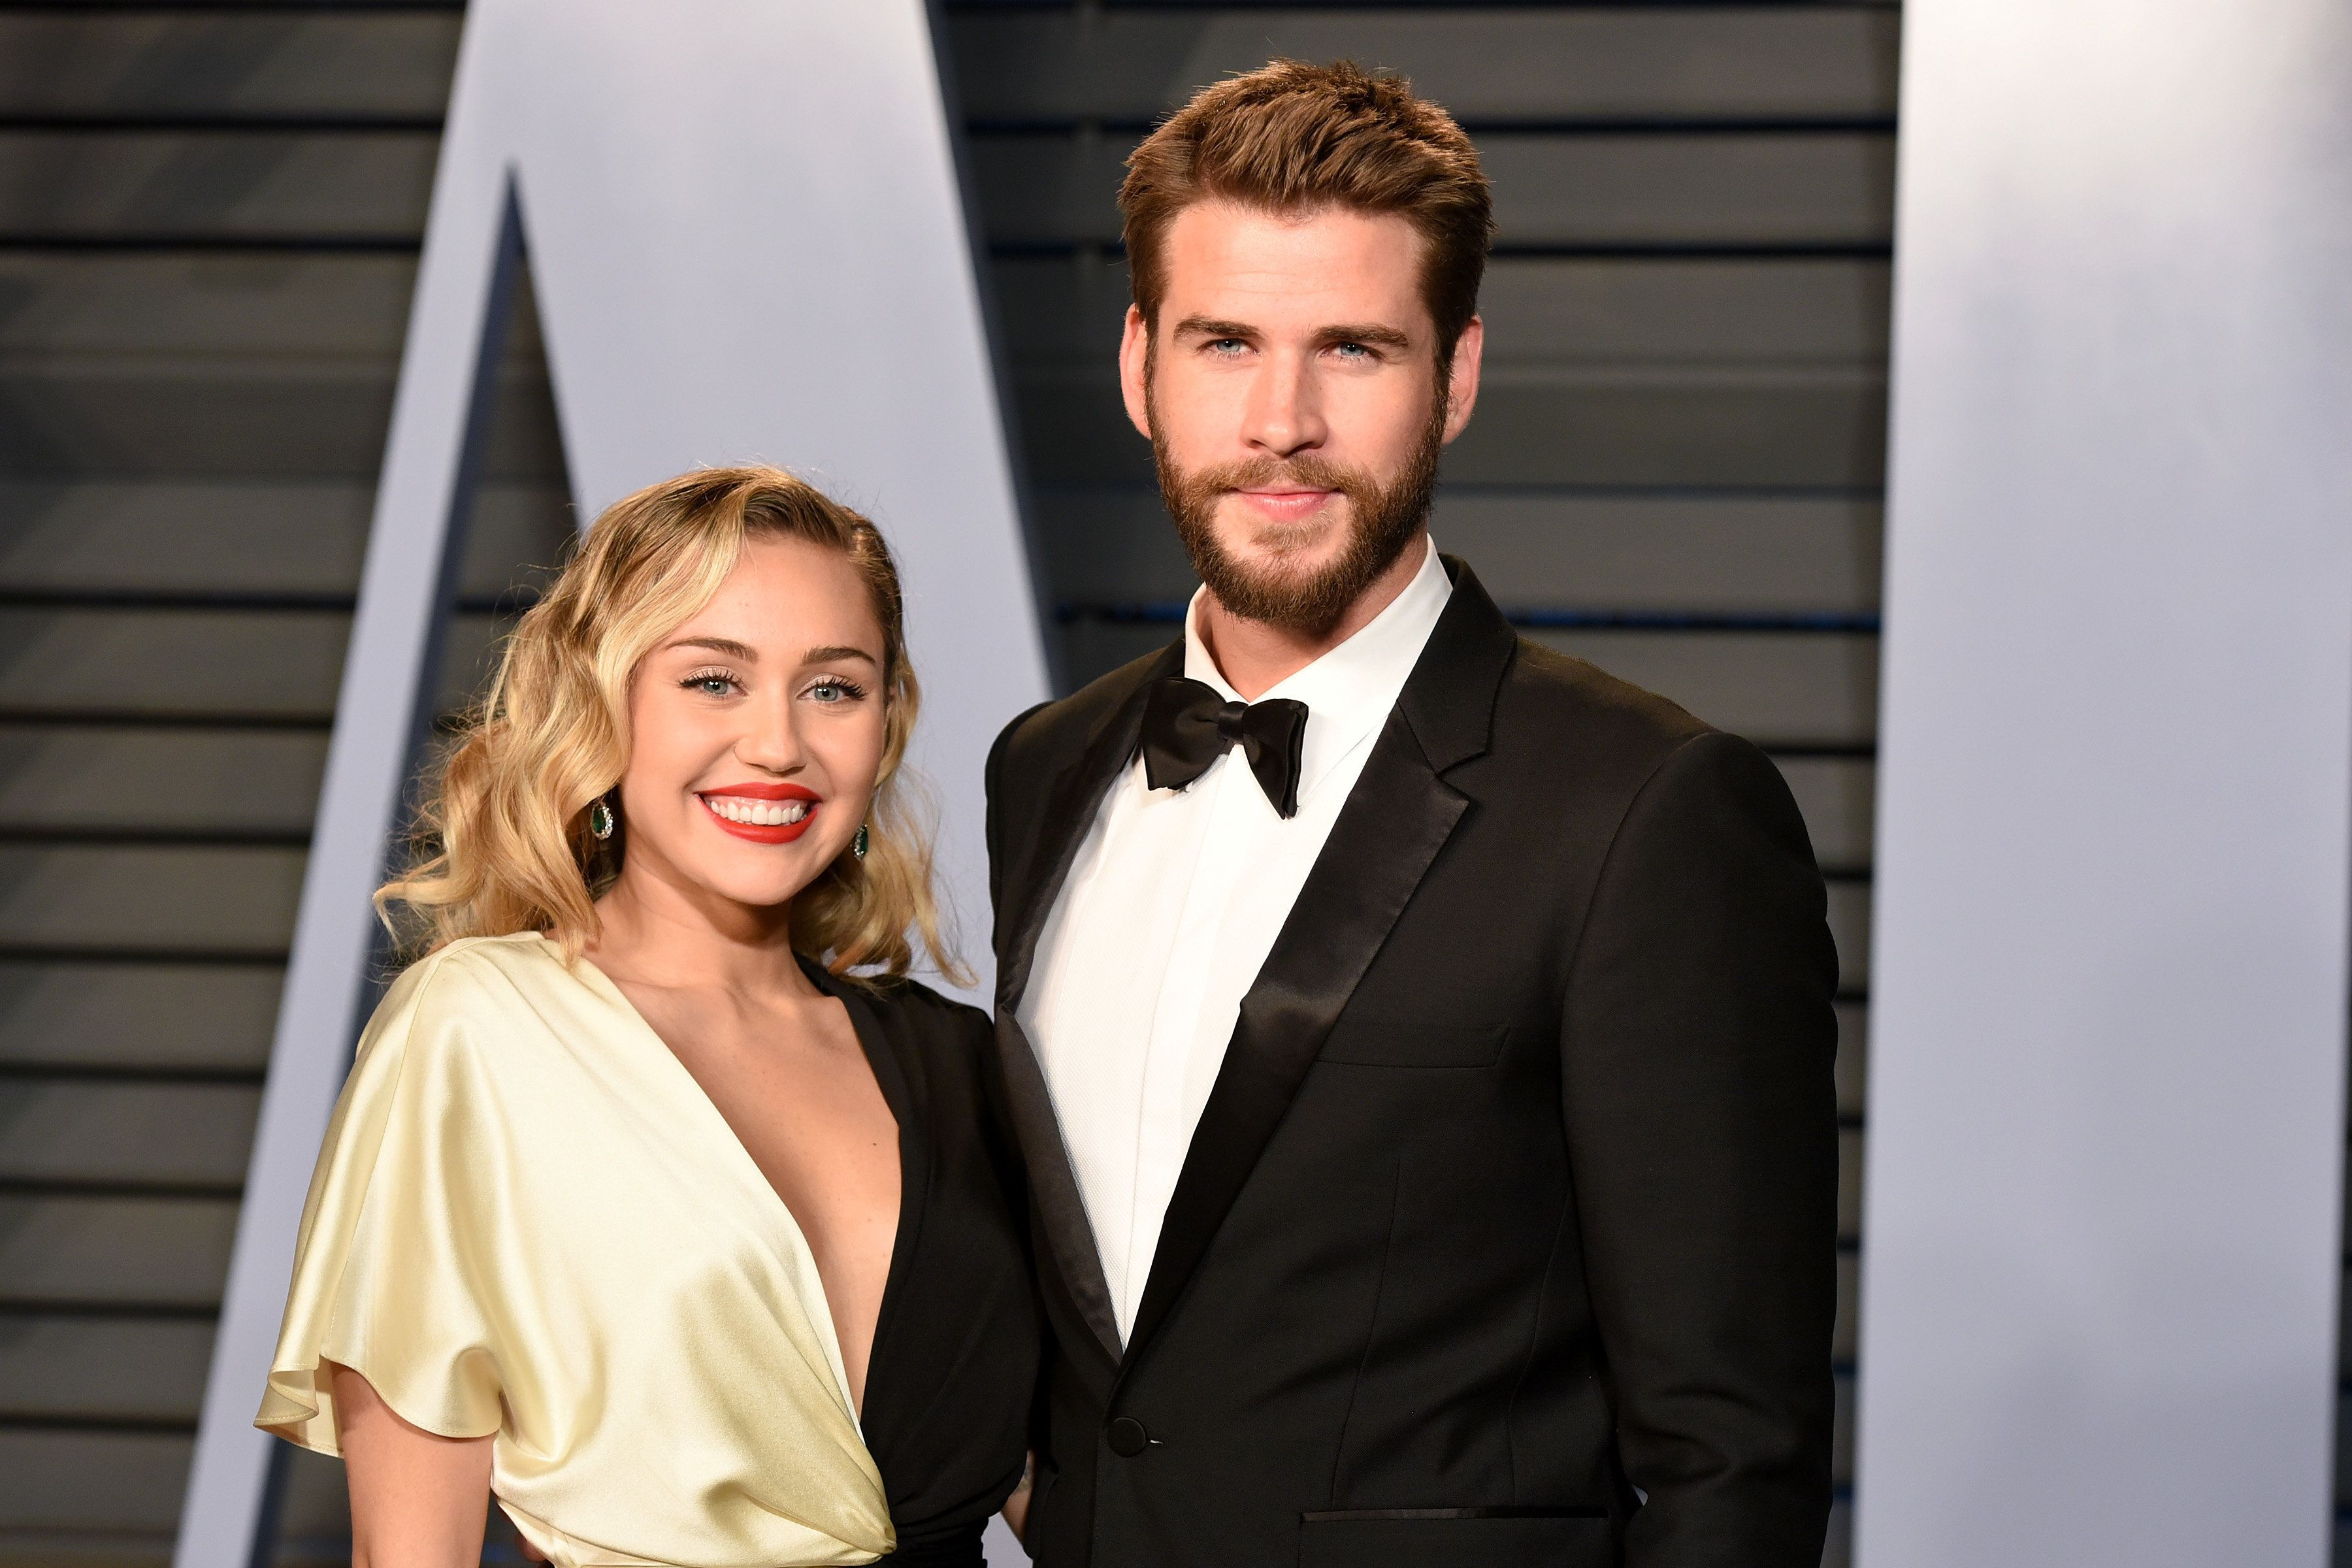 Miley Cyrus and Liam Hemsworth attend the 2018 Vanity Fair Oscar party on March 4 in Beverly Hills,